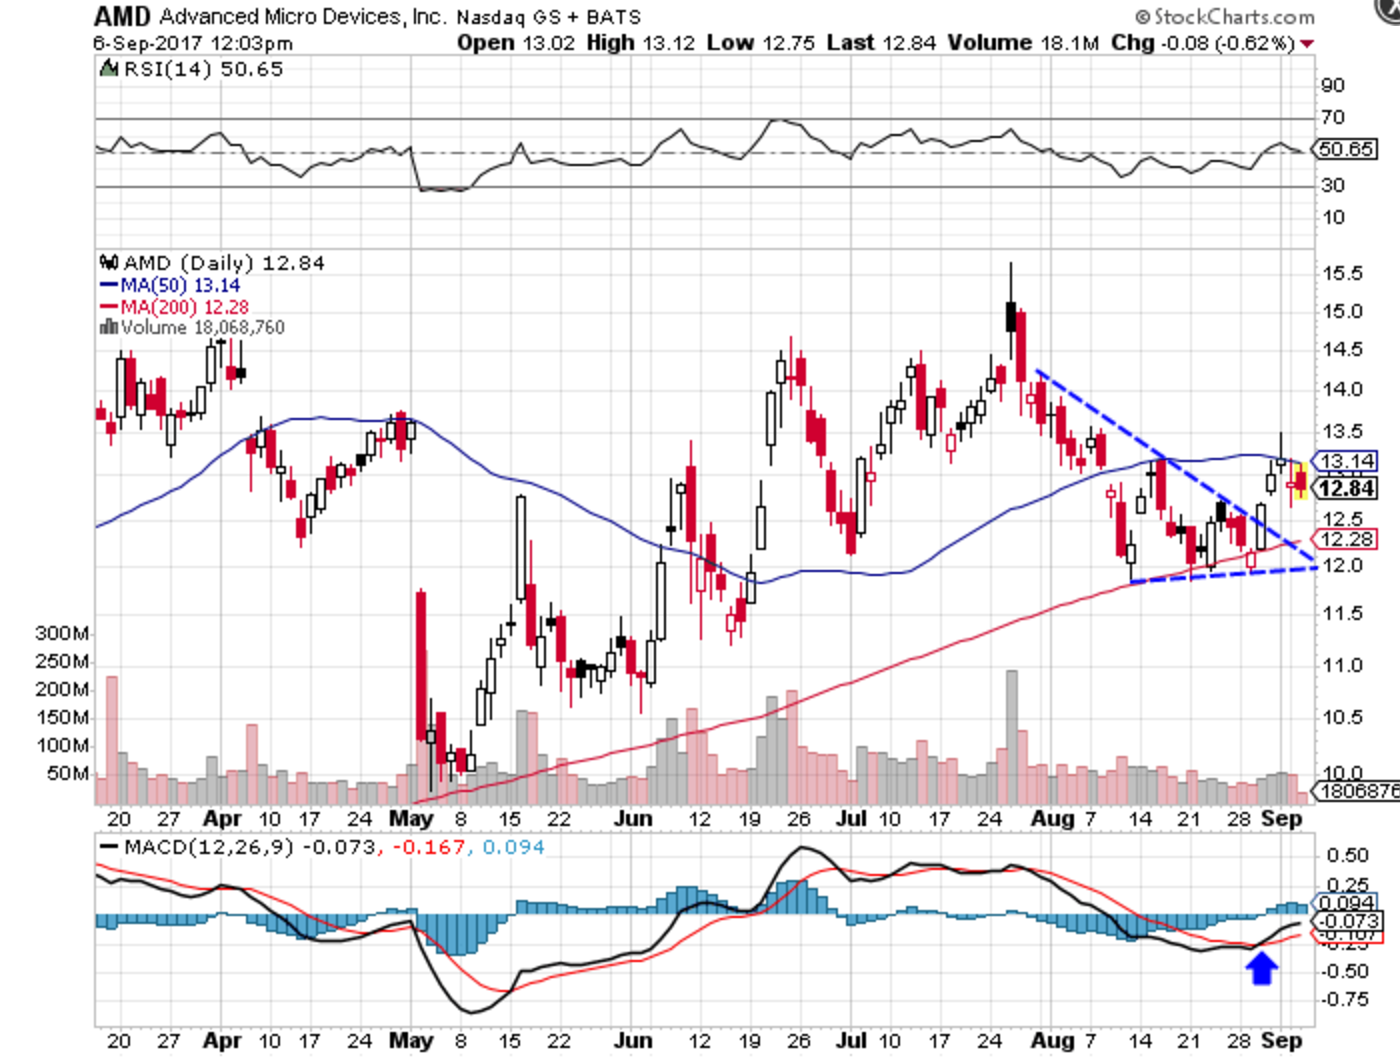 Technical chart showing the performance of Advanced Micro Devices, Inc. (AMD) stock